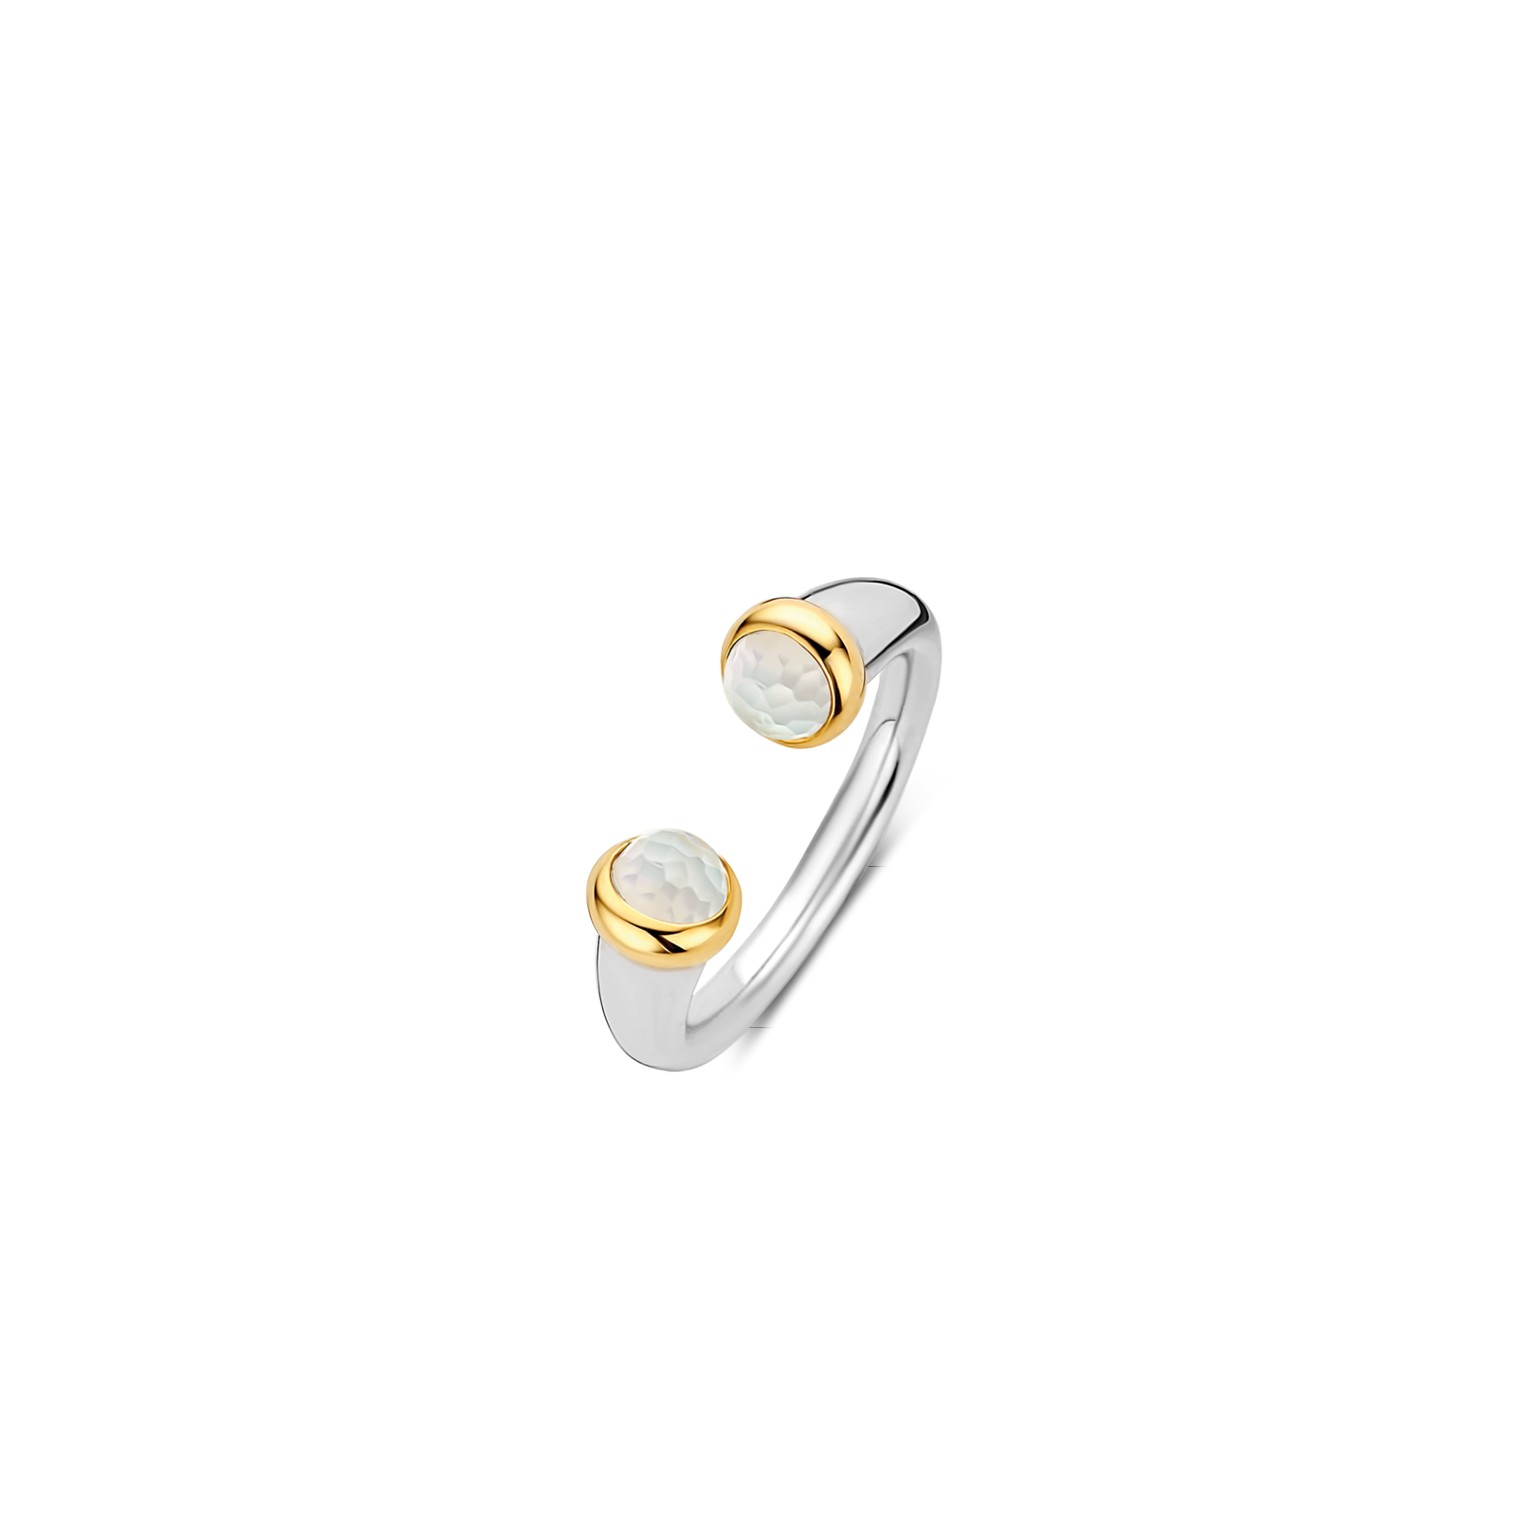 TI SENTO Milano Ring 12177MW Zilver gold plated Maat 48